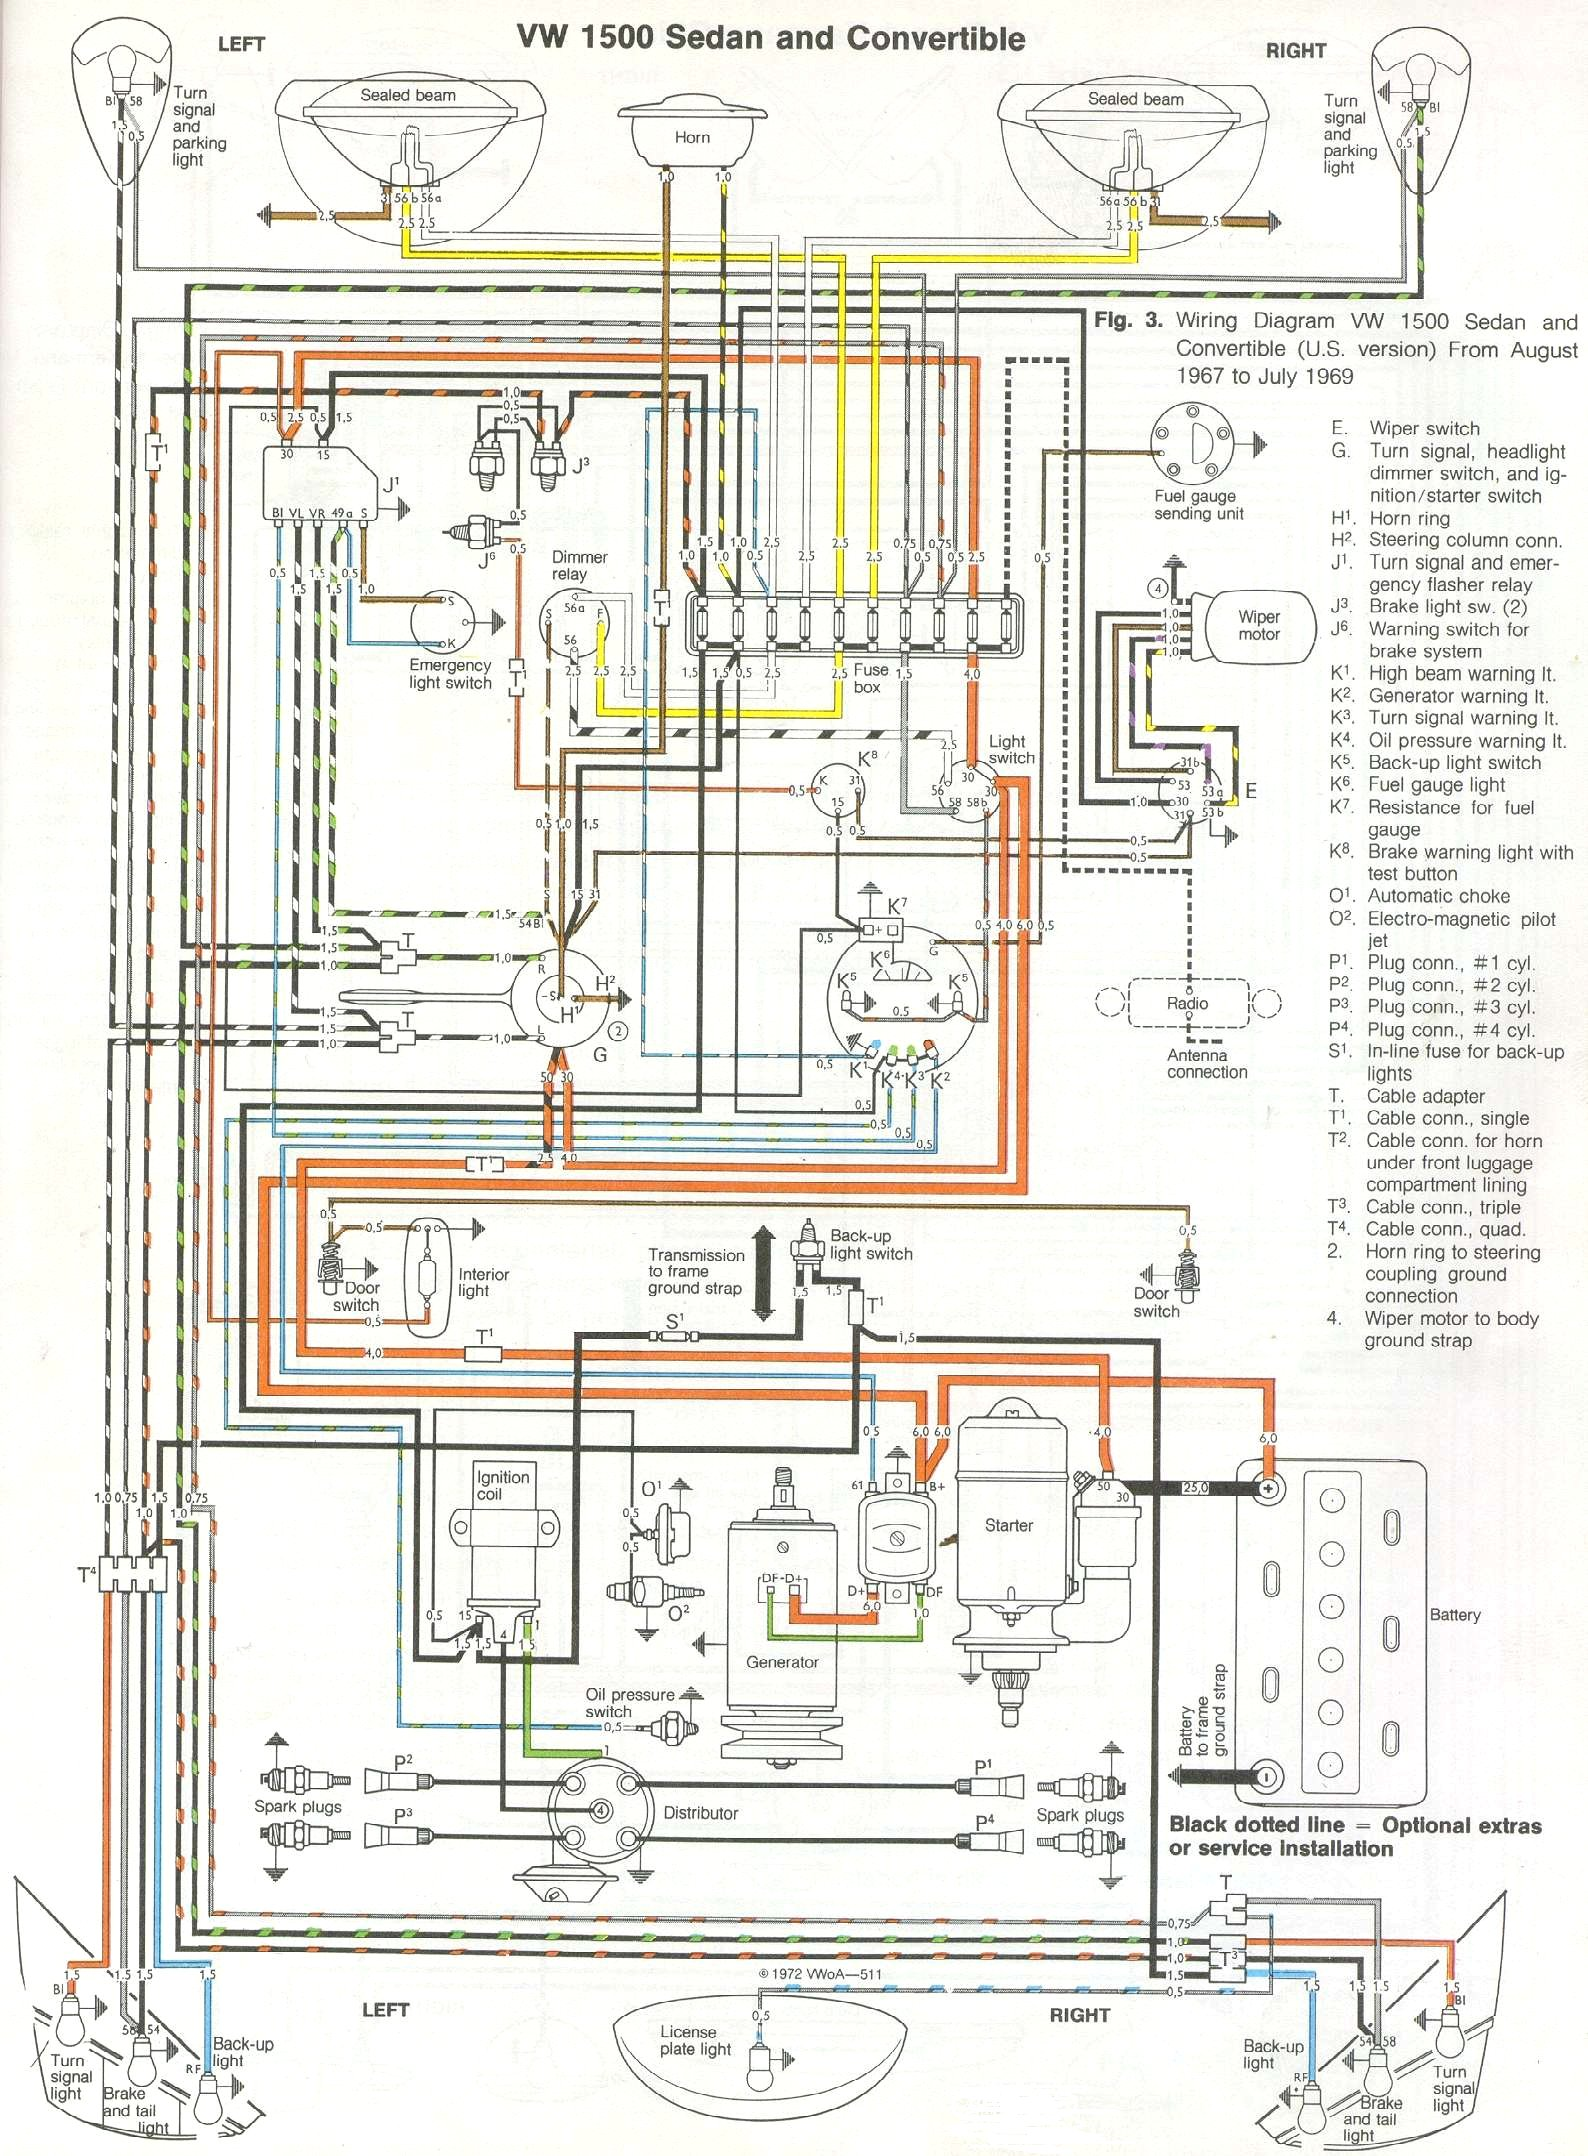 1969 71 beetle wiring diagram thegoldenbug com 1973 vw wiring diagram vw beetle diagram #2